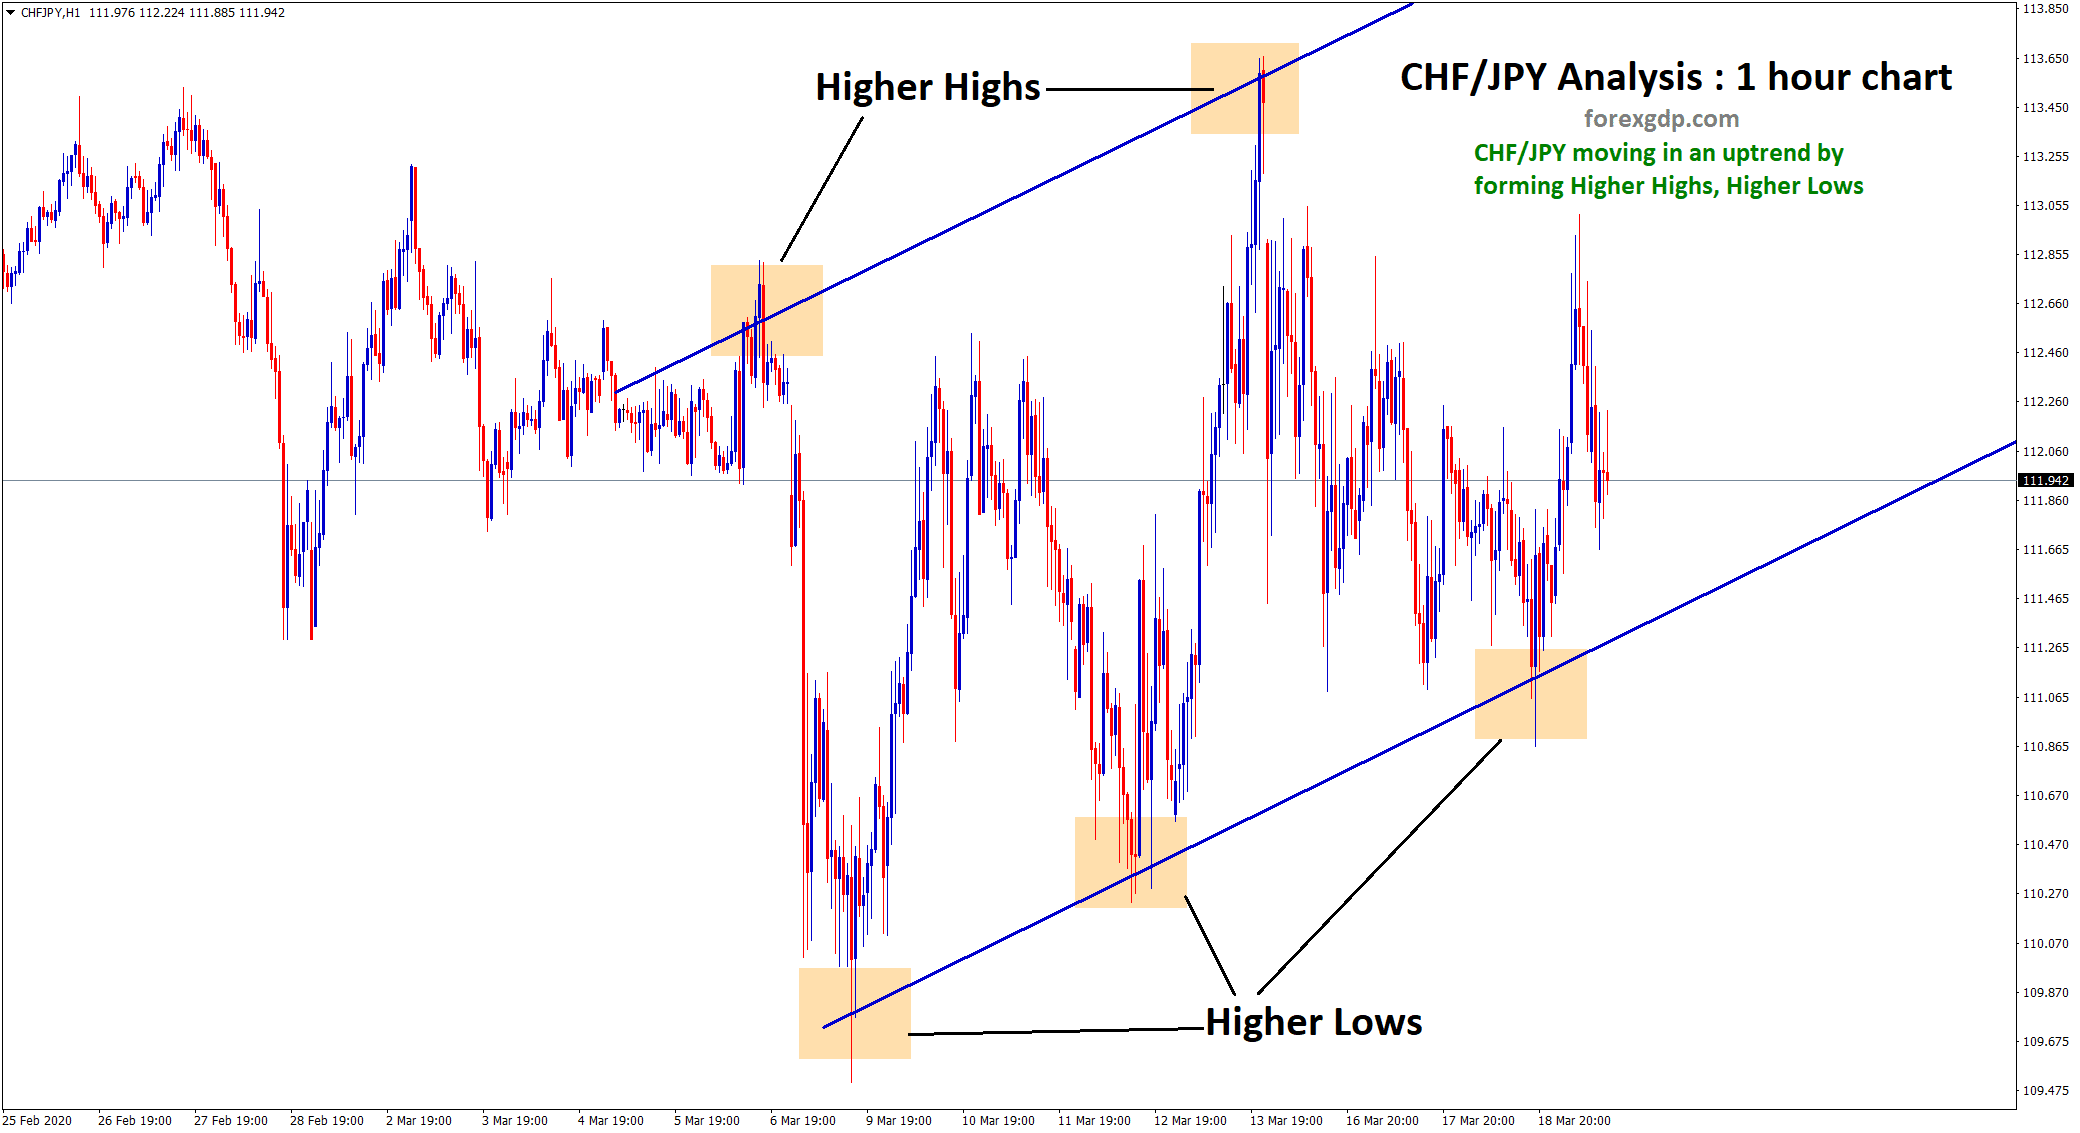 chfjpy starts to move up now